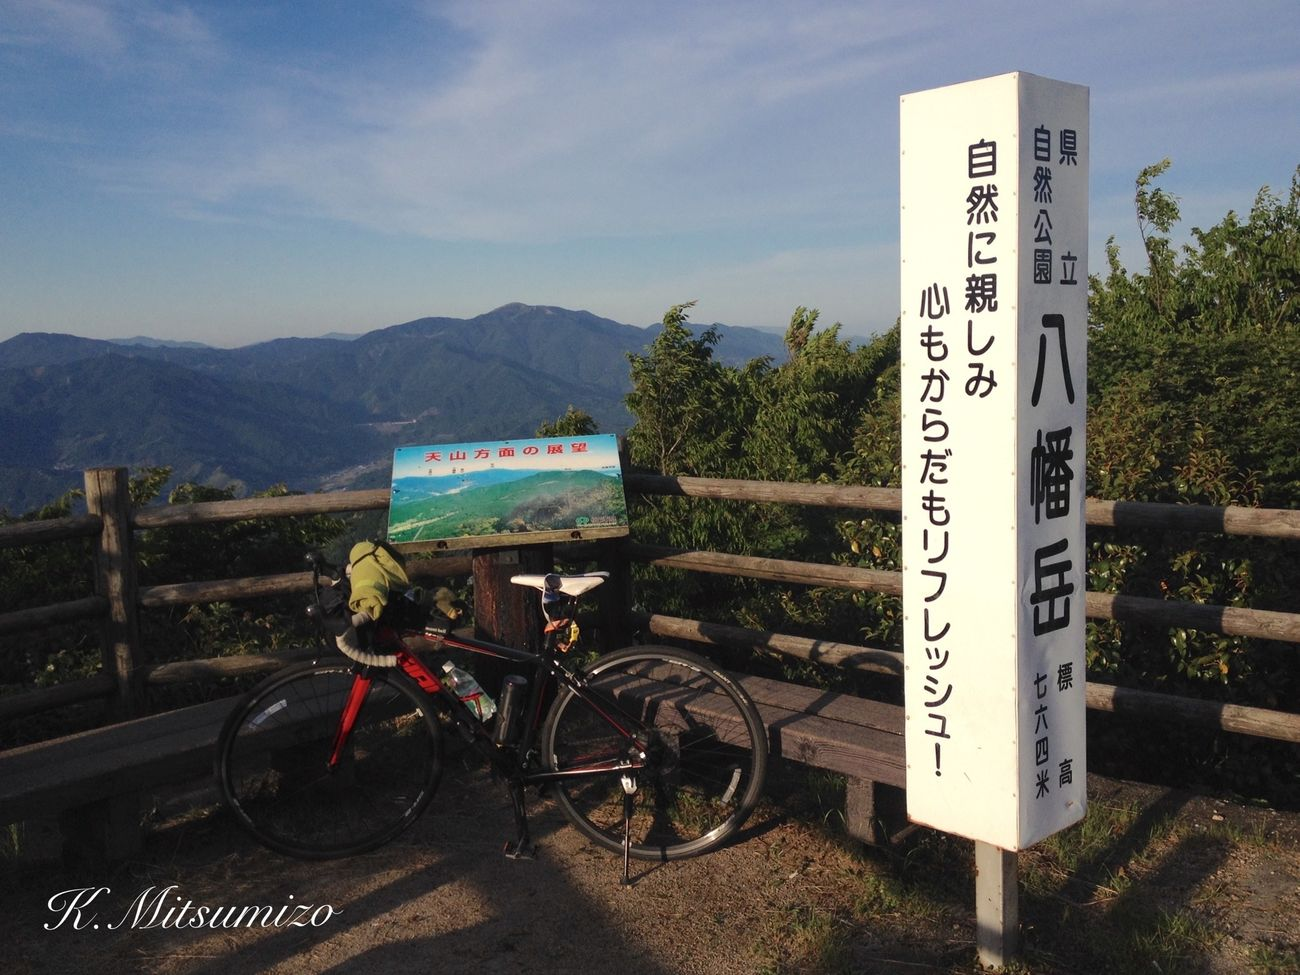 我が家から🚵でおよそ2時間八幡岳の山頂です。Hachimandake at an altitude of 764m.which climbed in the road bike 🚵 Landscape Nature Photography Tadaa Community Road Bike ロードバイク Giant Bicycle Bicycle 八幡岳 伊万里 唐津 多久 武雄